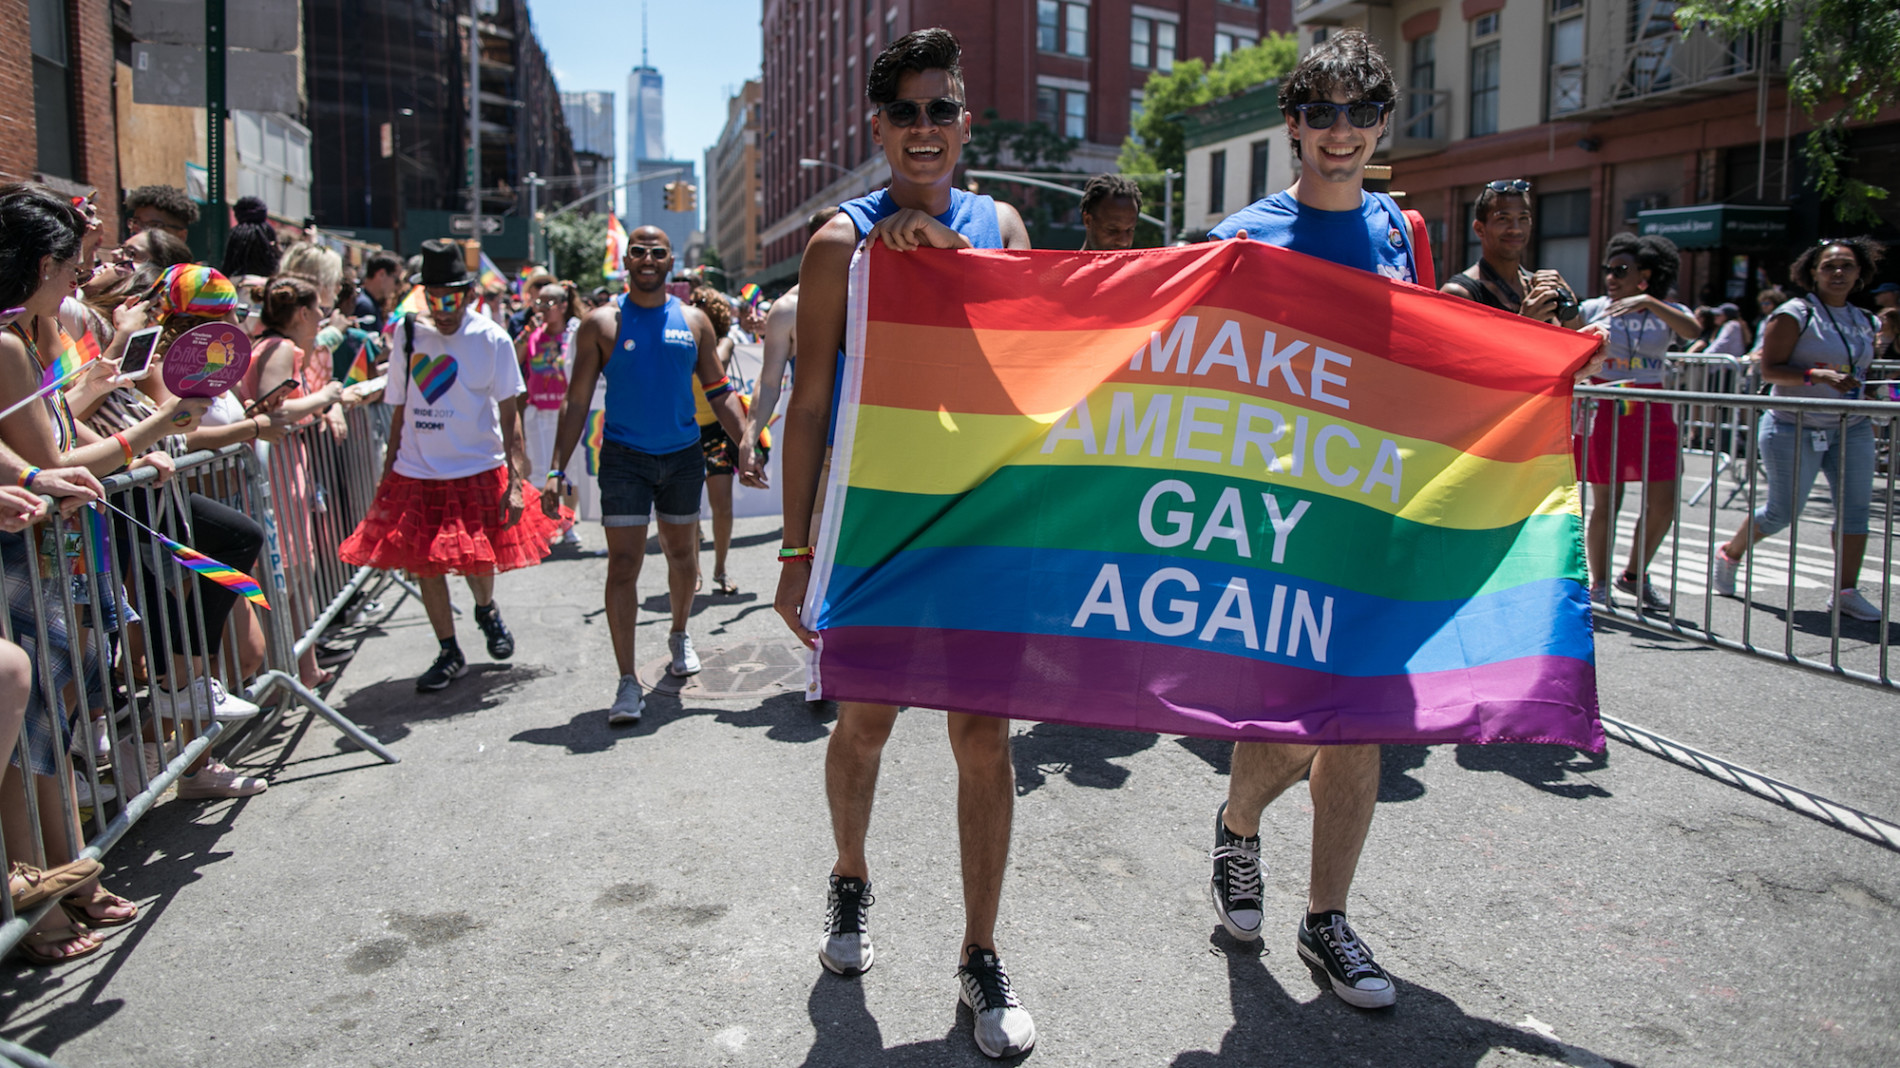 Chicago pride parade, pride fest postponed over covid